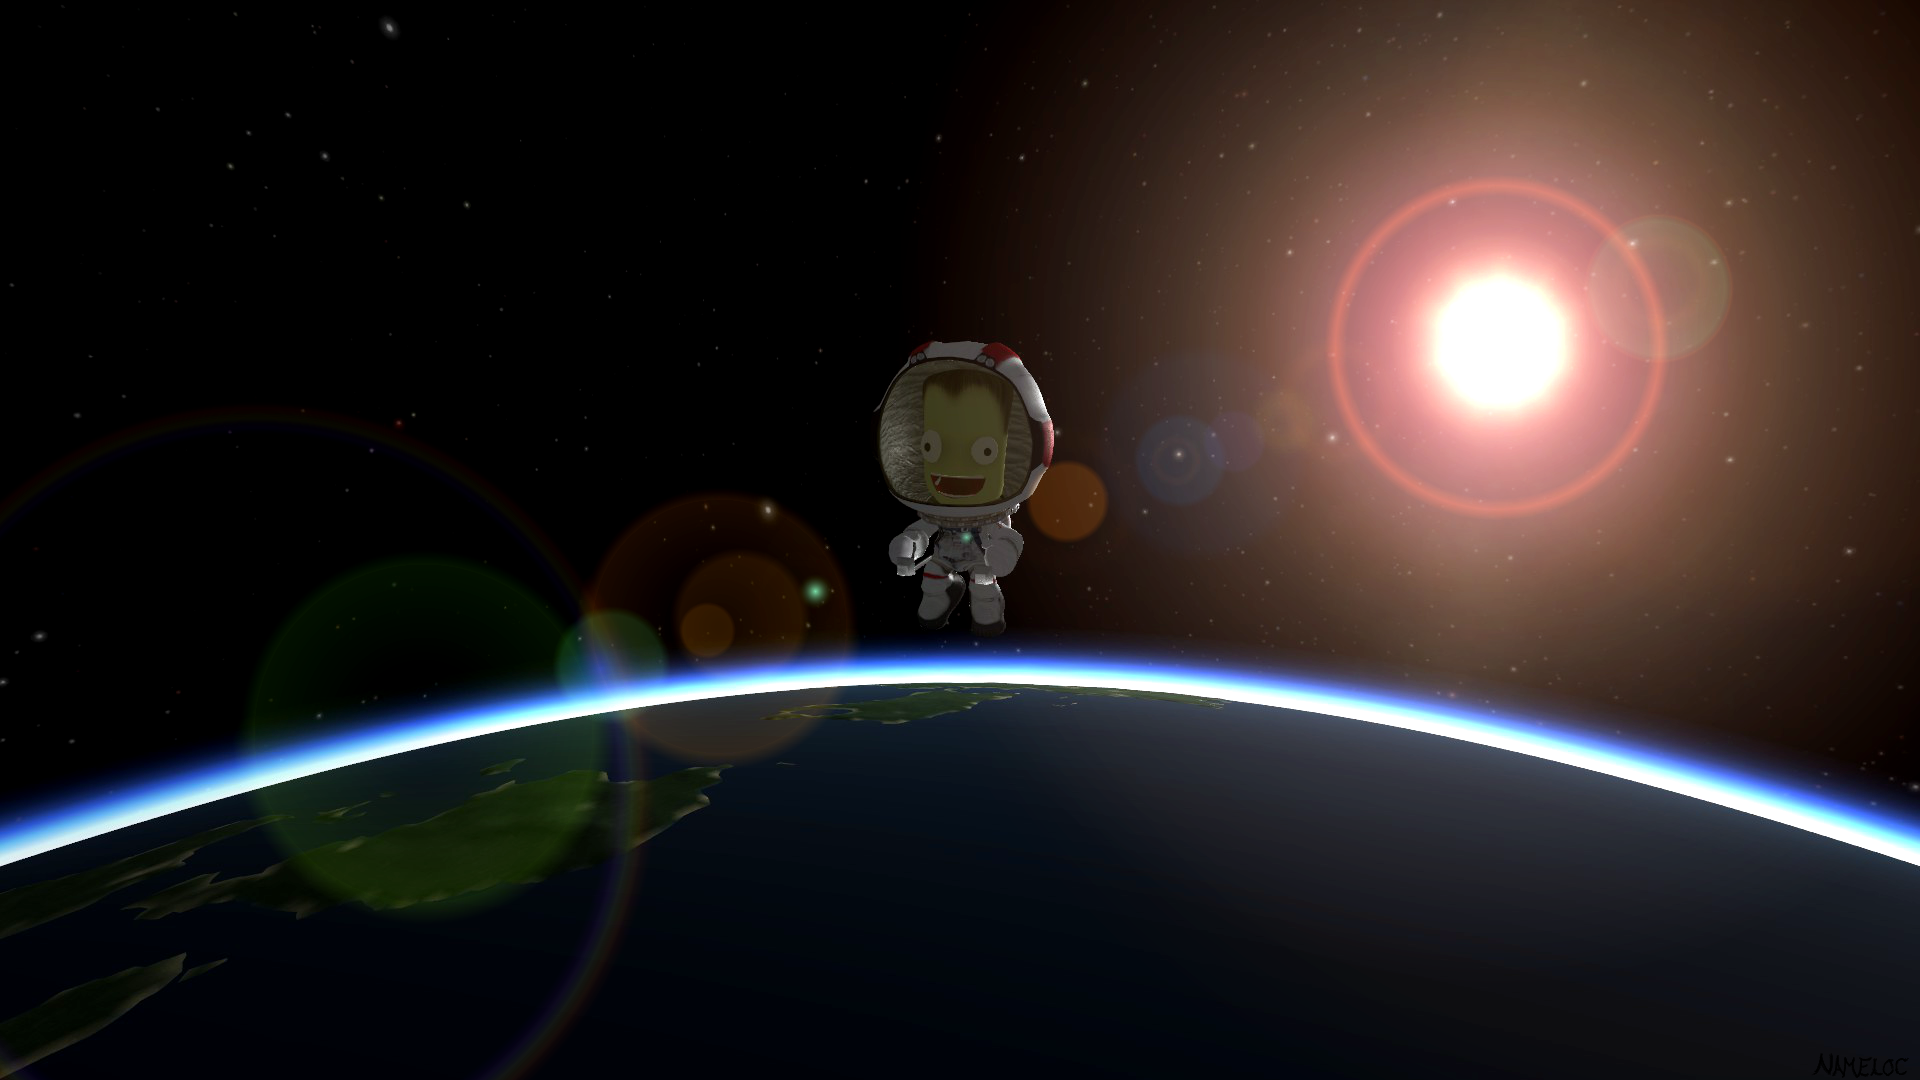 ksp wallpaper hd